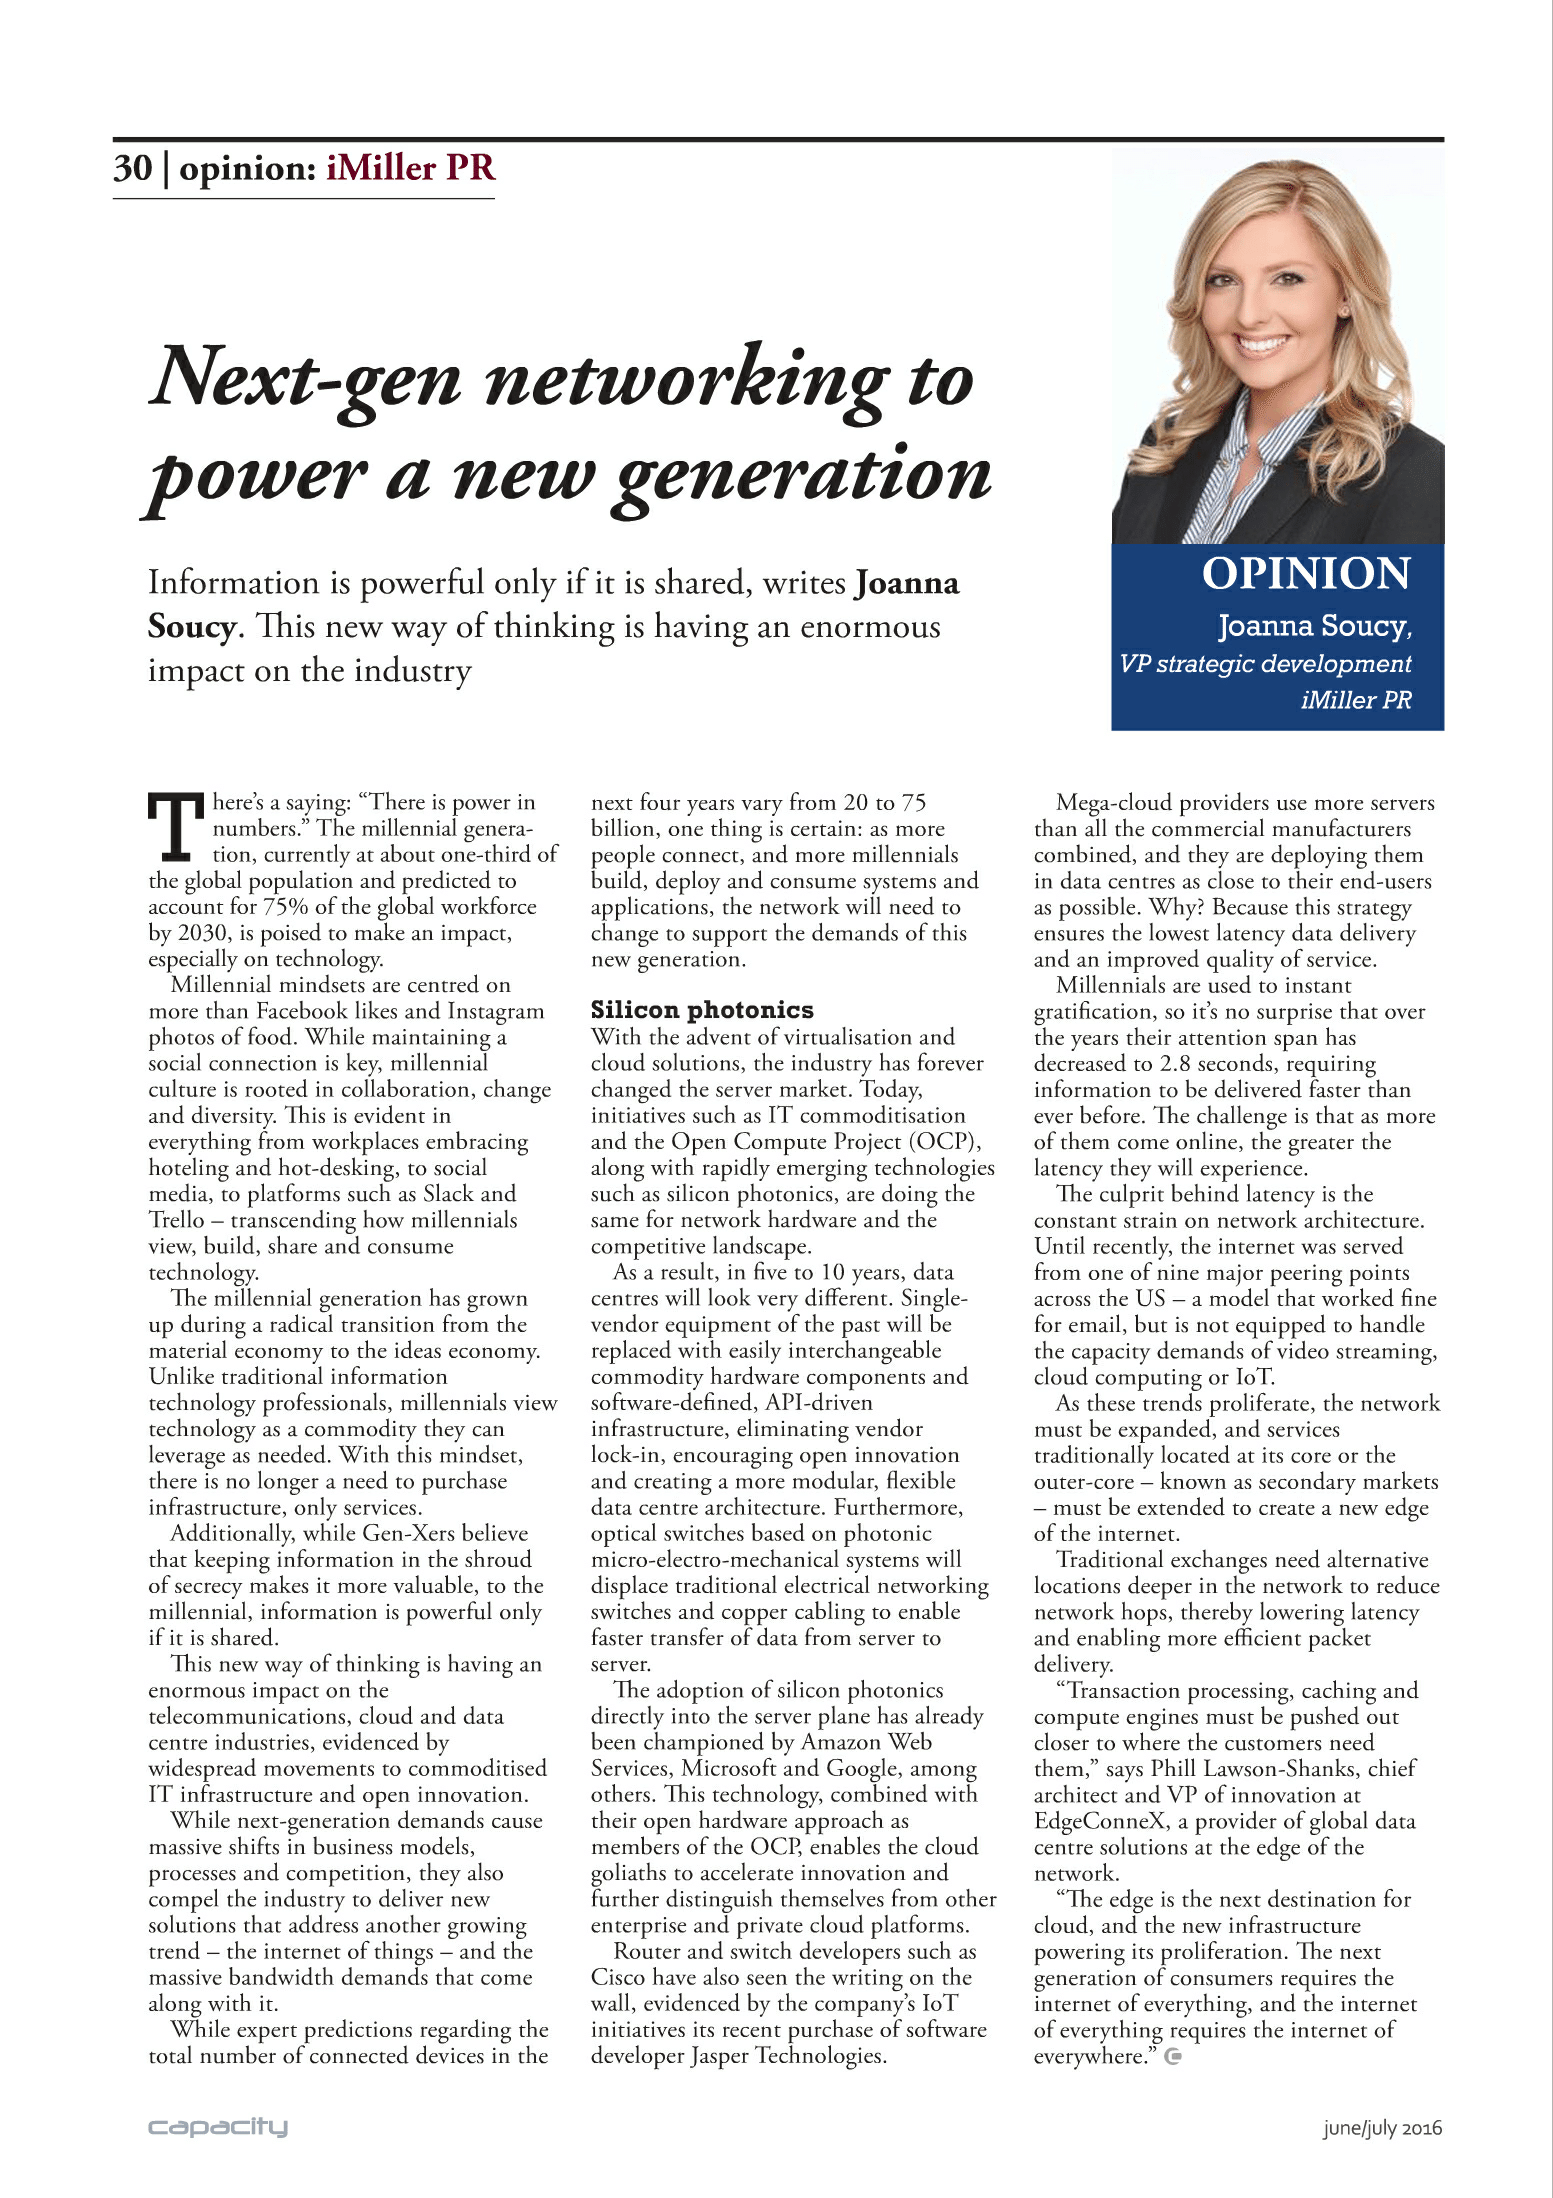 Next-gen Networking to Power a New Generation-1